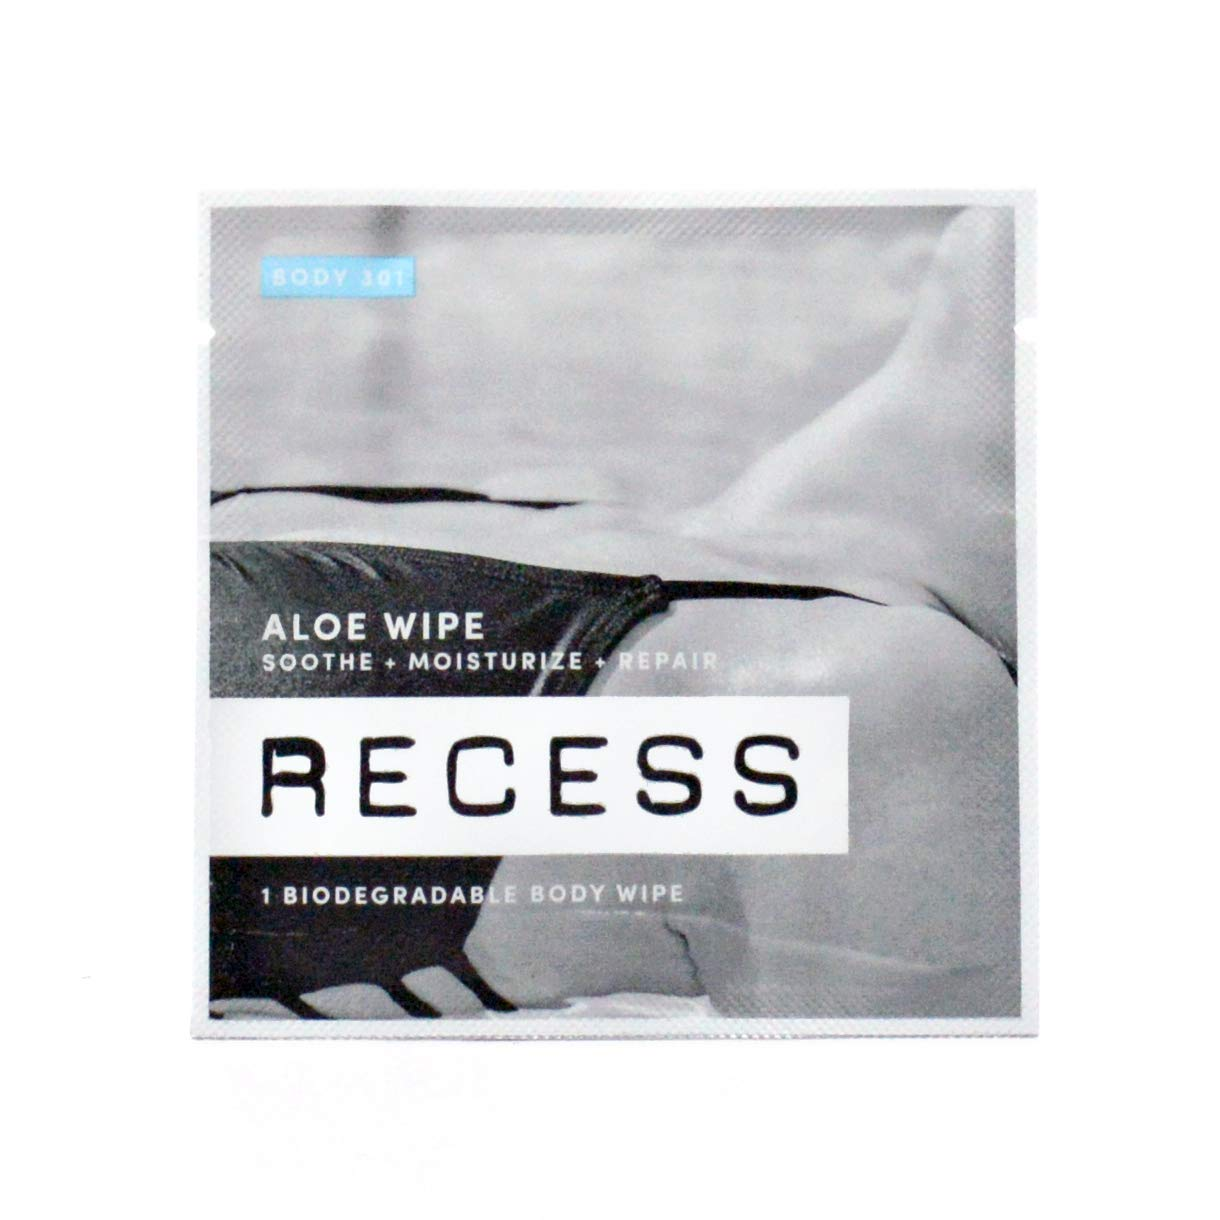 RECESS BODY 301 Aloe Wipes to Soothe Moisturize Sunburn, Windburn and Dry Skin with Witch Hazel Alcohol-Free Wipes For Sensitive Skin 15 Pack